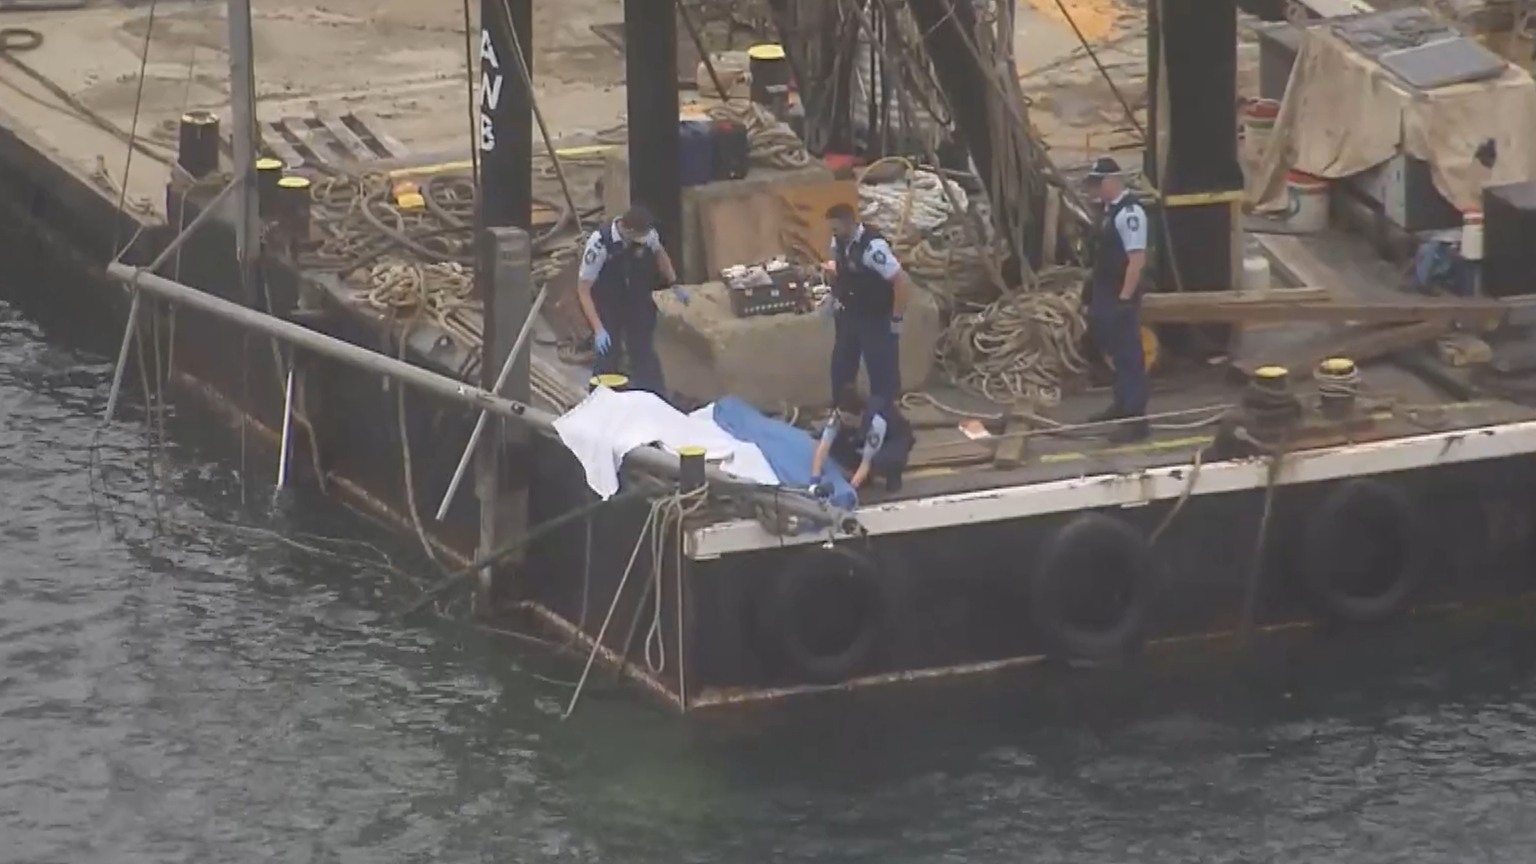 Man killed in Sydney workplace incident